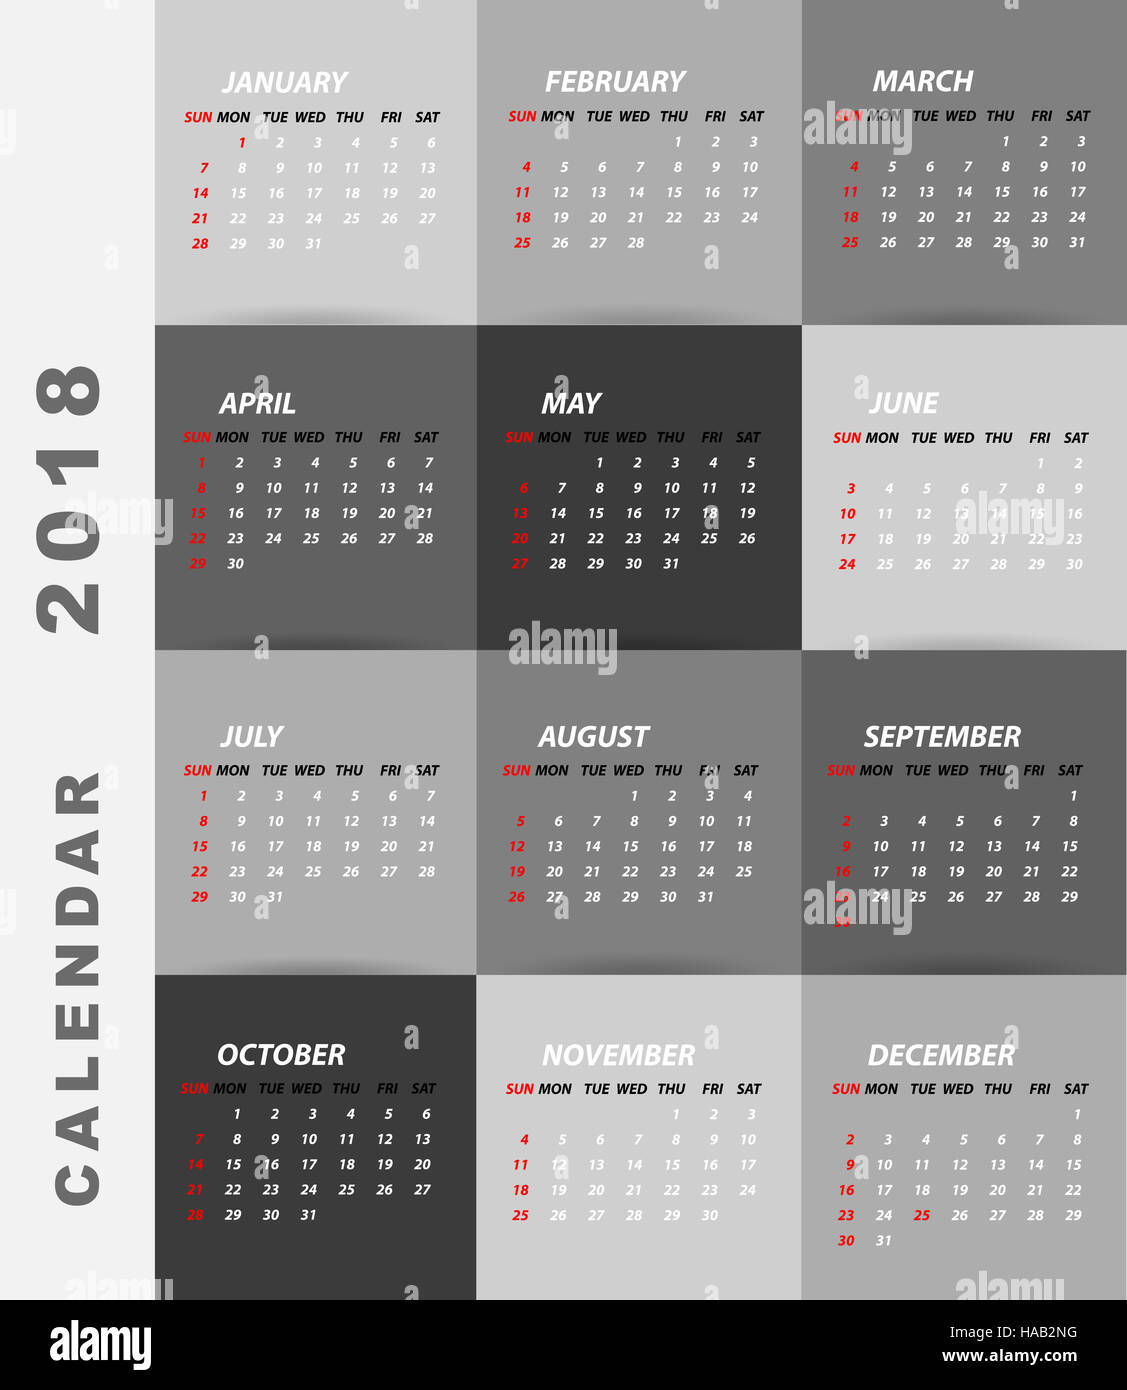 Minimalist Calendar Design : Calendar minimalist design stock photo royalty free